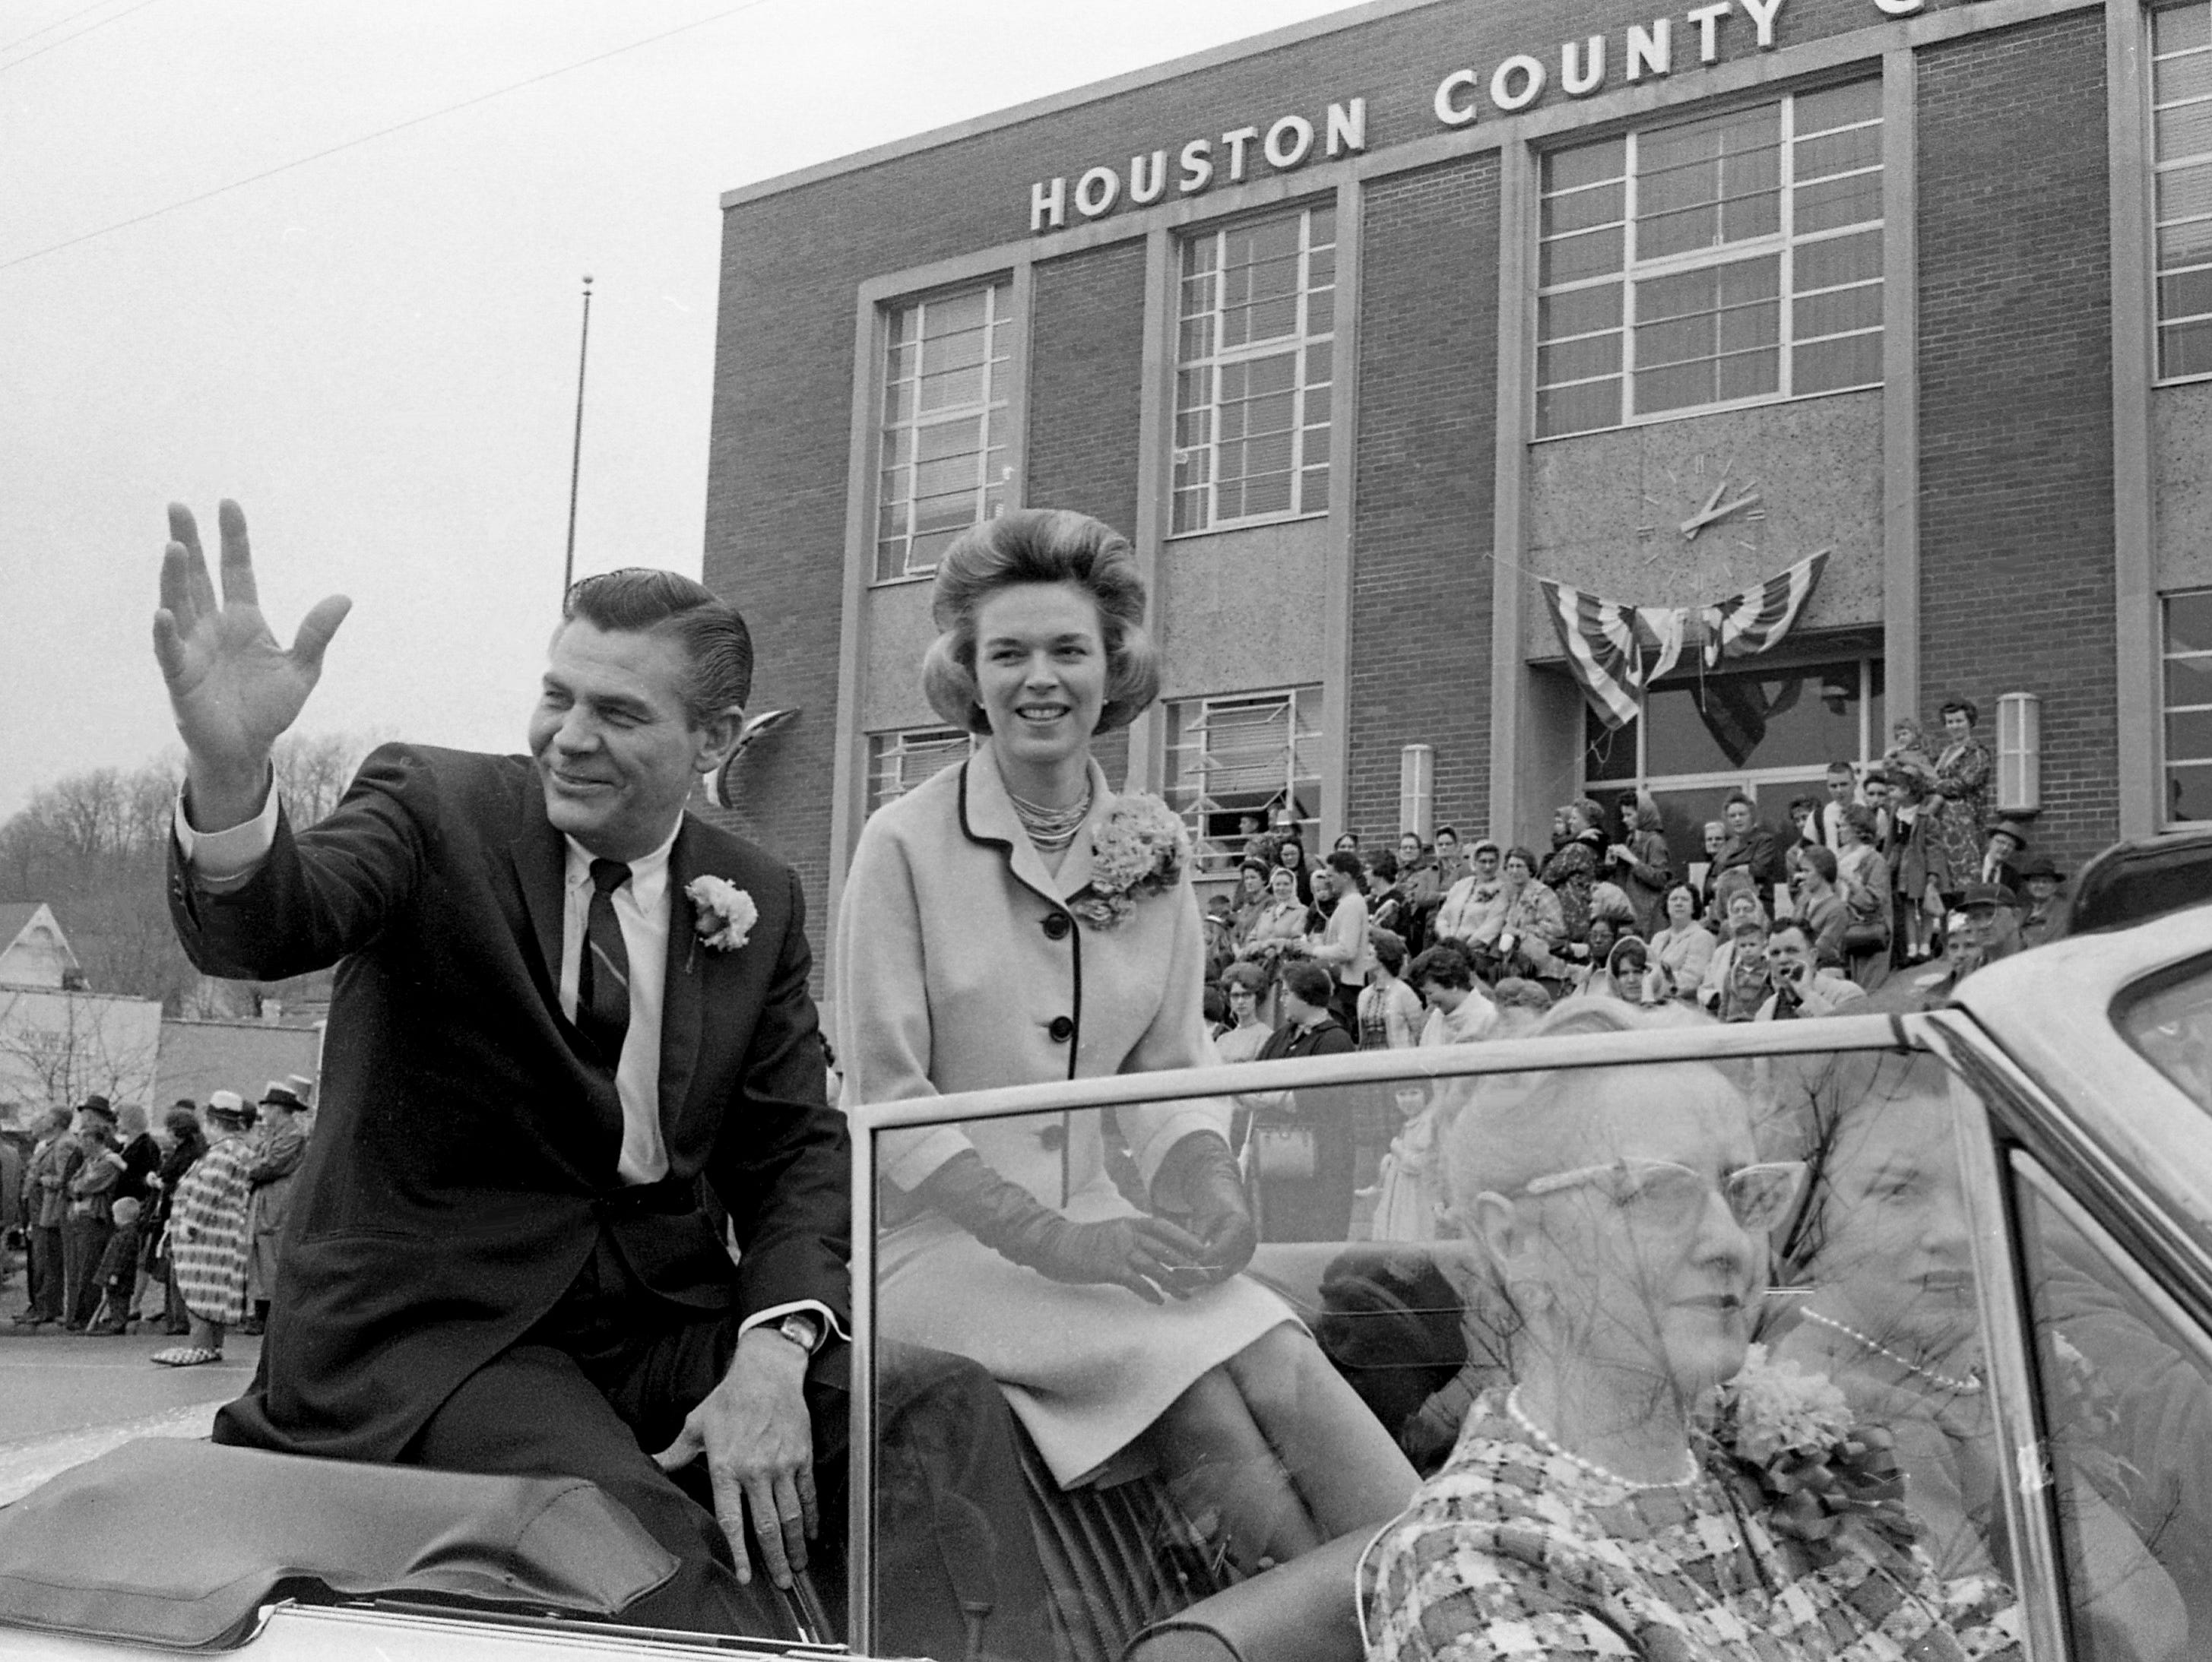 Congressman Ross Bass, with wife Avanell, waves to the crowd as they ride in the parade of the second annual Wearing of the Green celebration in Erin, Tenn. March 14, 1964. The event was dedicated to Rep. Bass, who Sixth District includes Houston County where Erin is located.